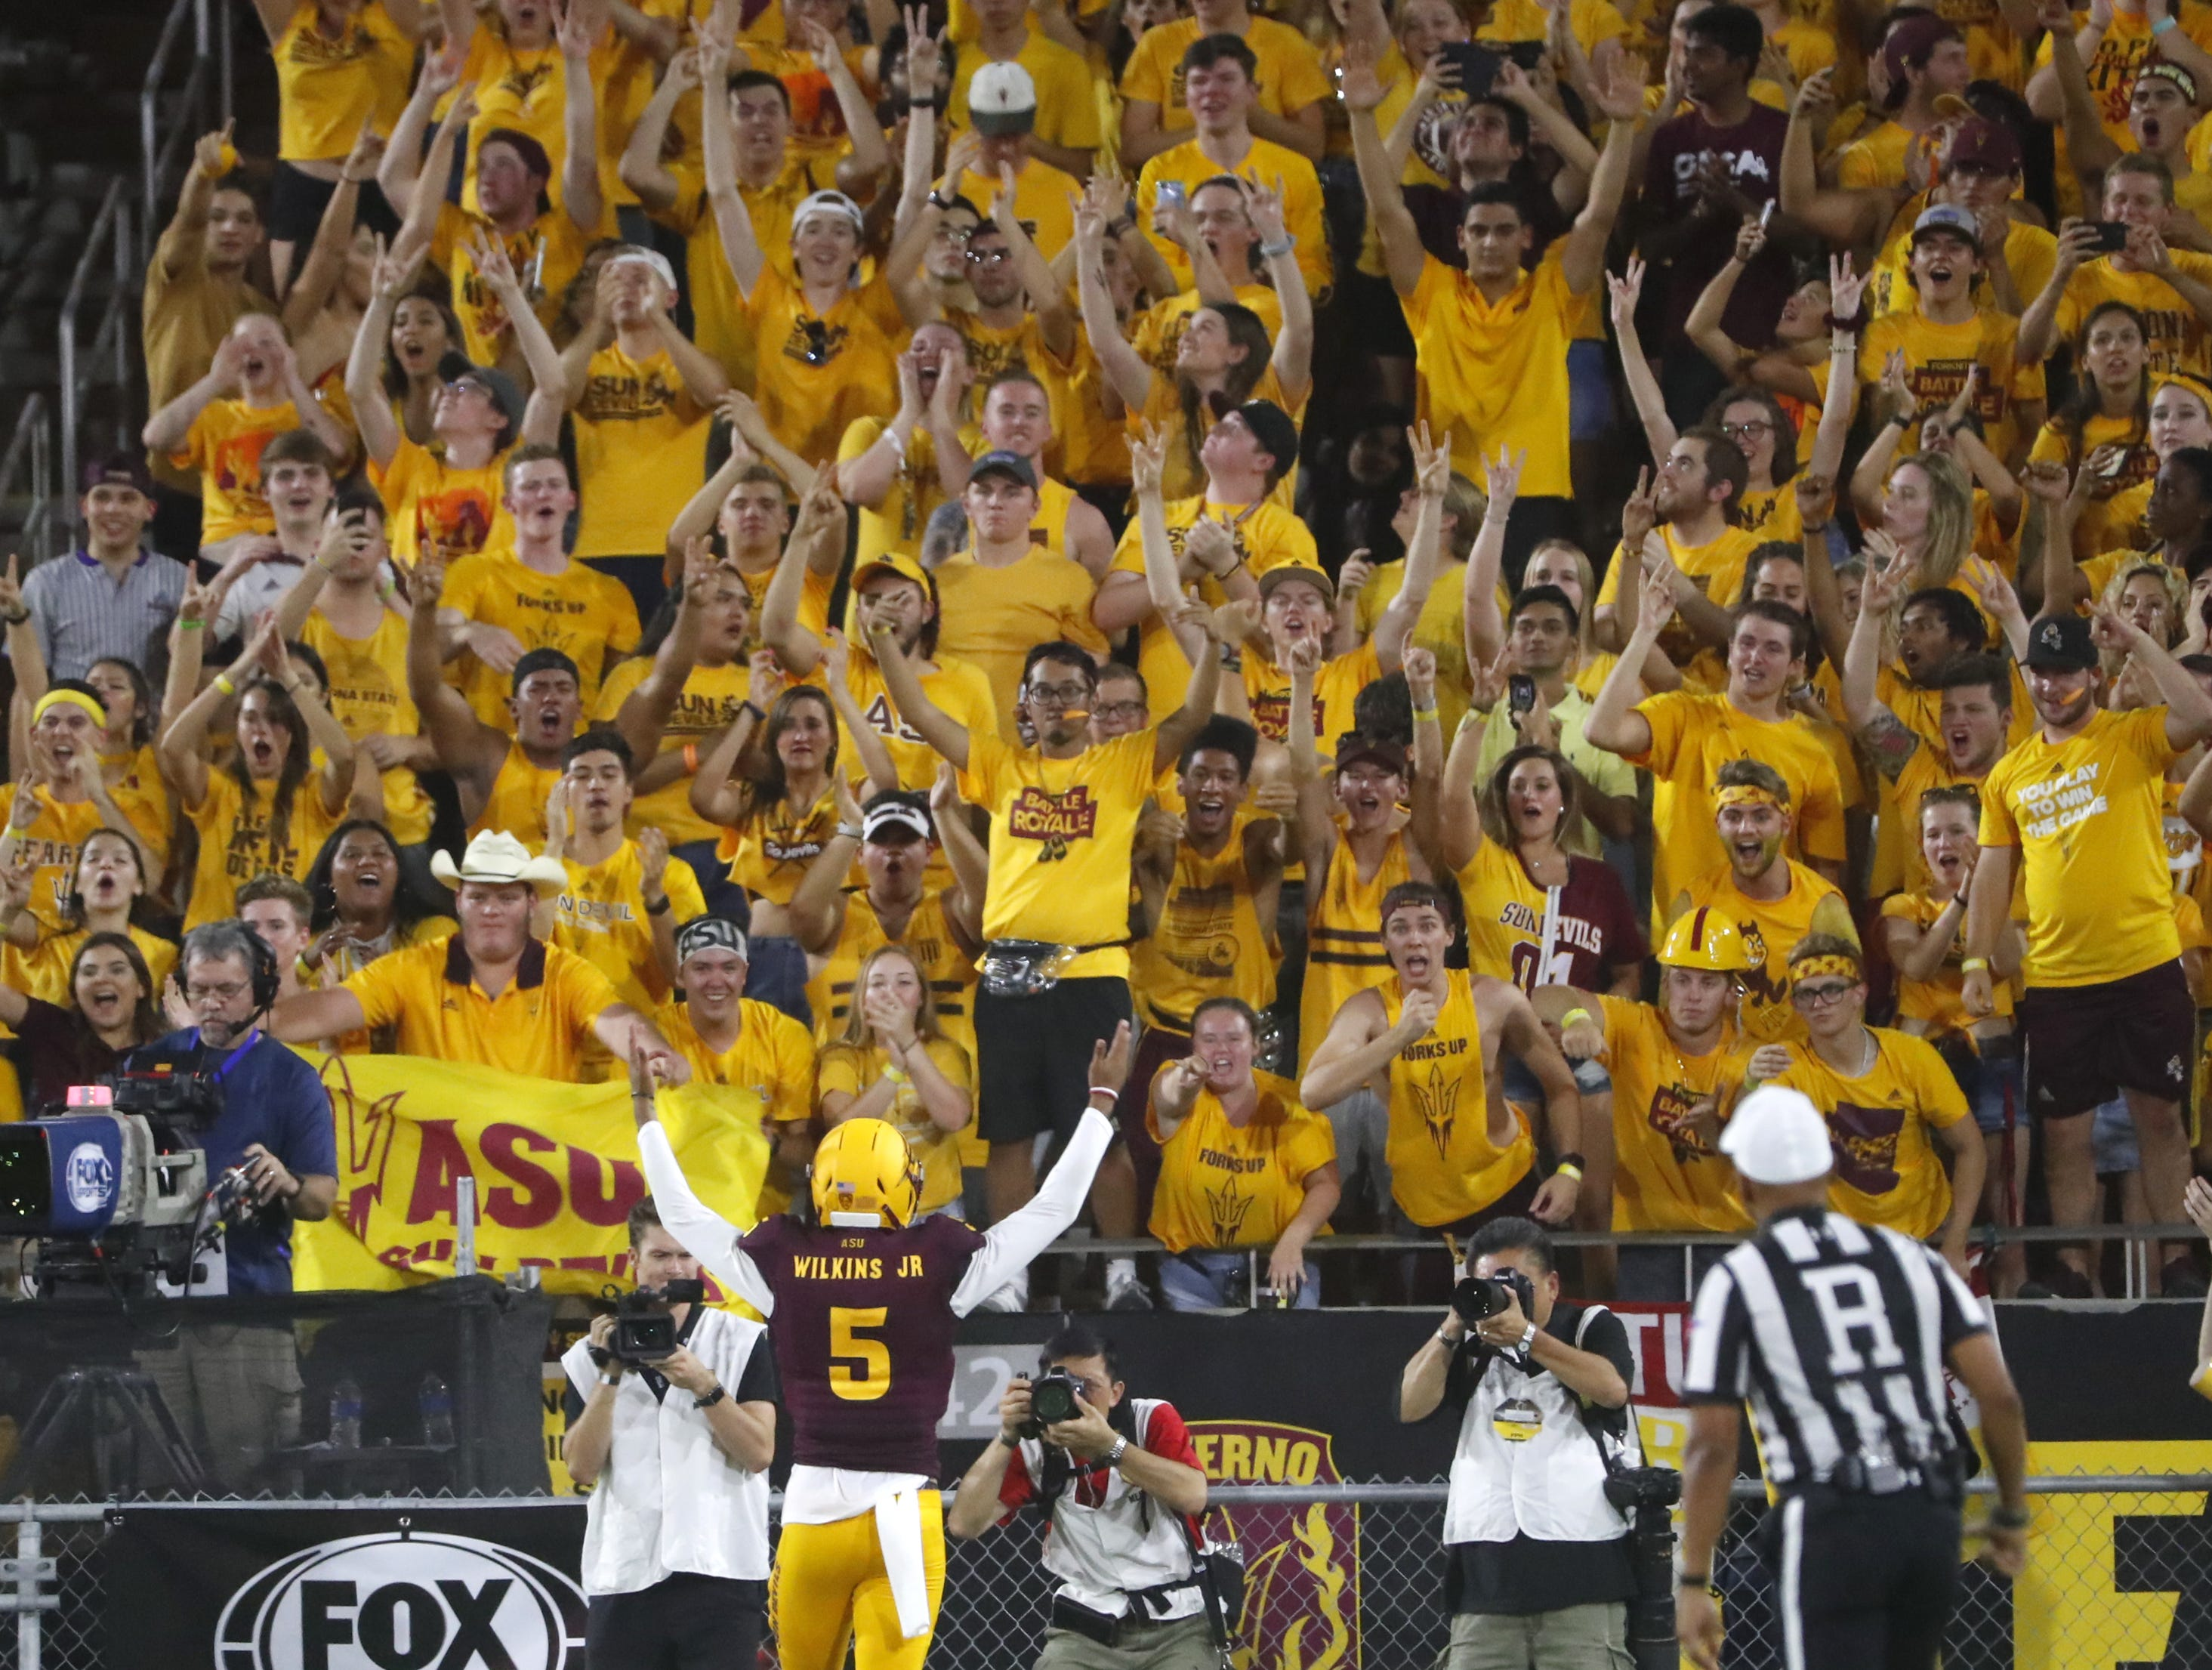 Arizona State Sun Devils quarterback Manny Wilkins (5) celebrates with the fans after ASU scored against UTSA during the second quarter at Sun Devil Stadium in Tempe, Ariz. on Sept. 1, 2018.